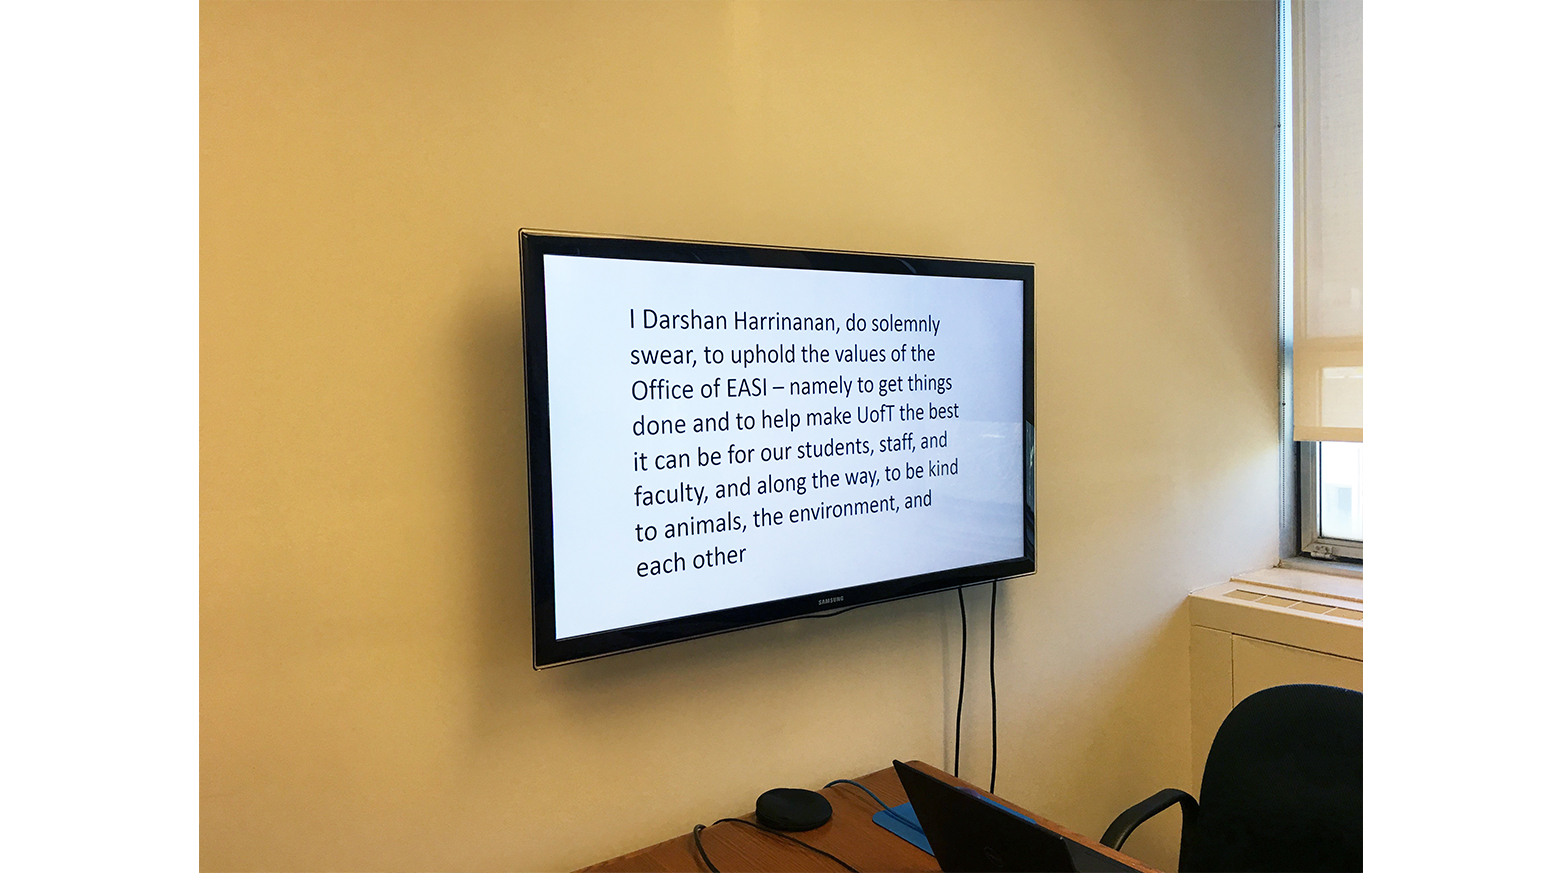 The oath that Darshan Harrinanan takes is displayed on a screen